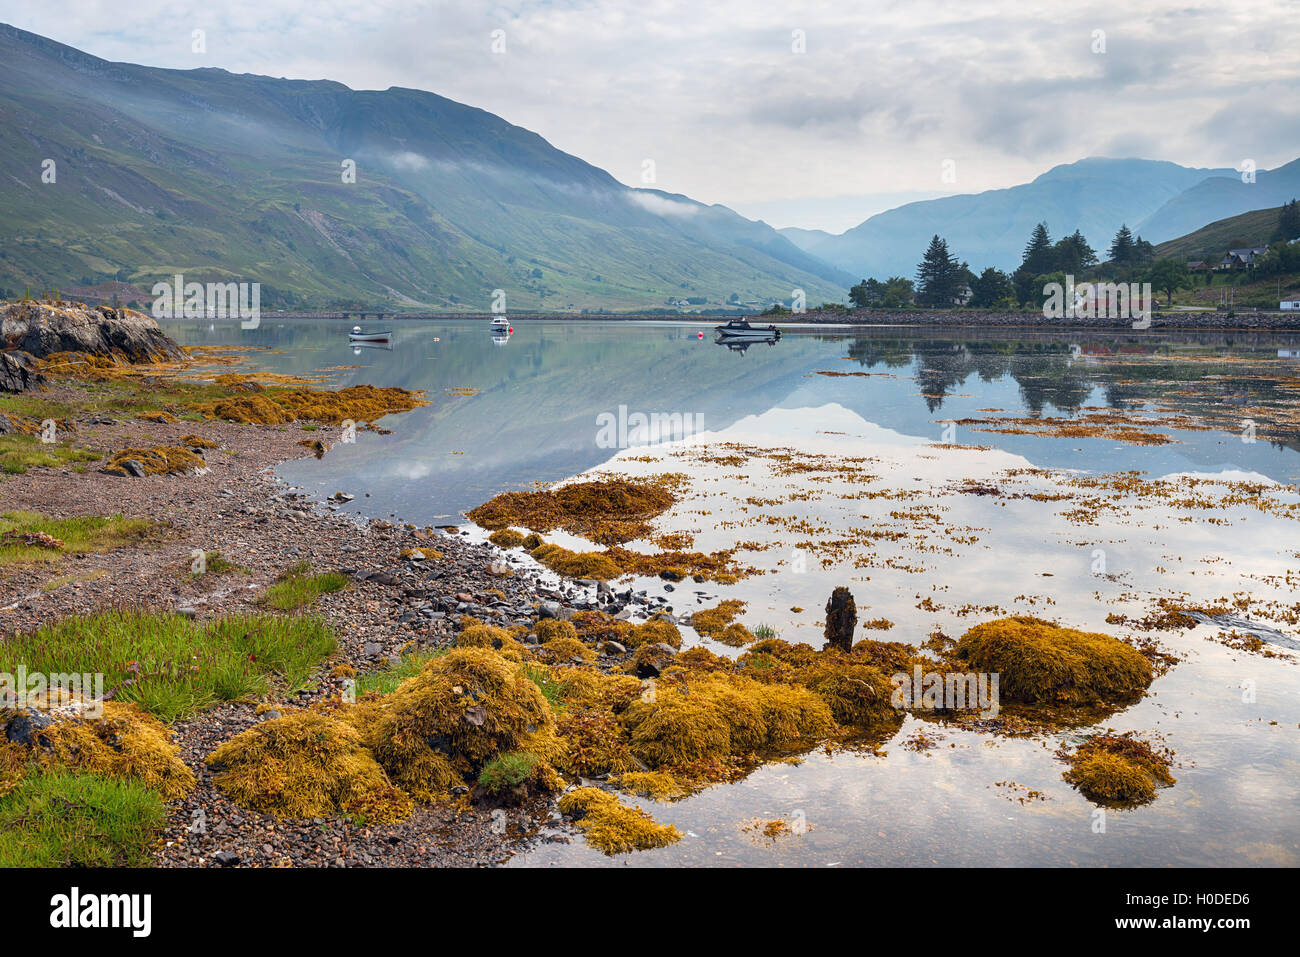 Loch Duich in the highlands of Scotland Stock Photo